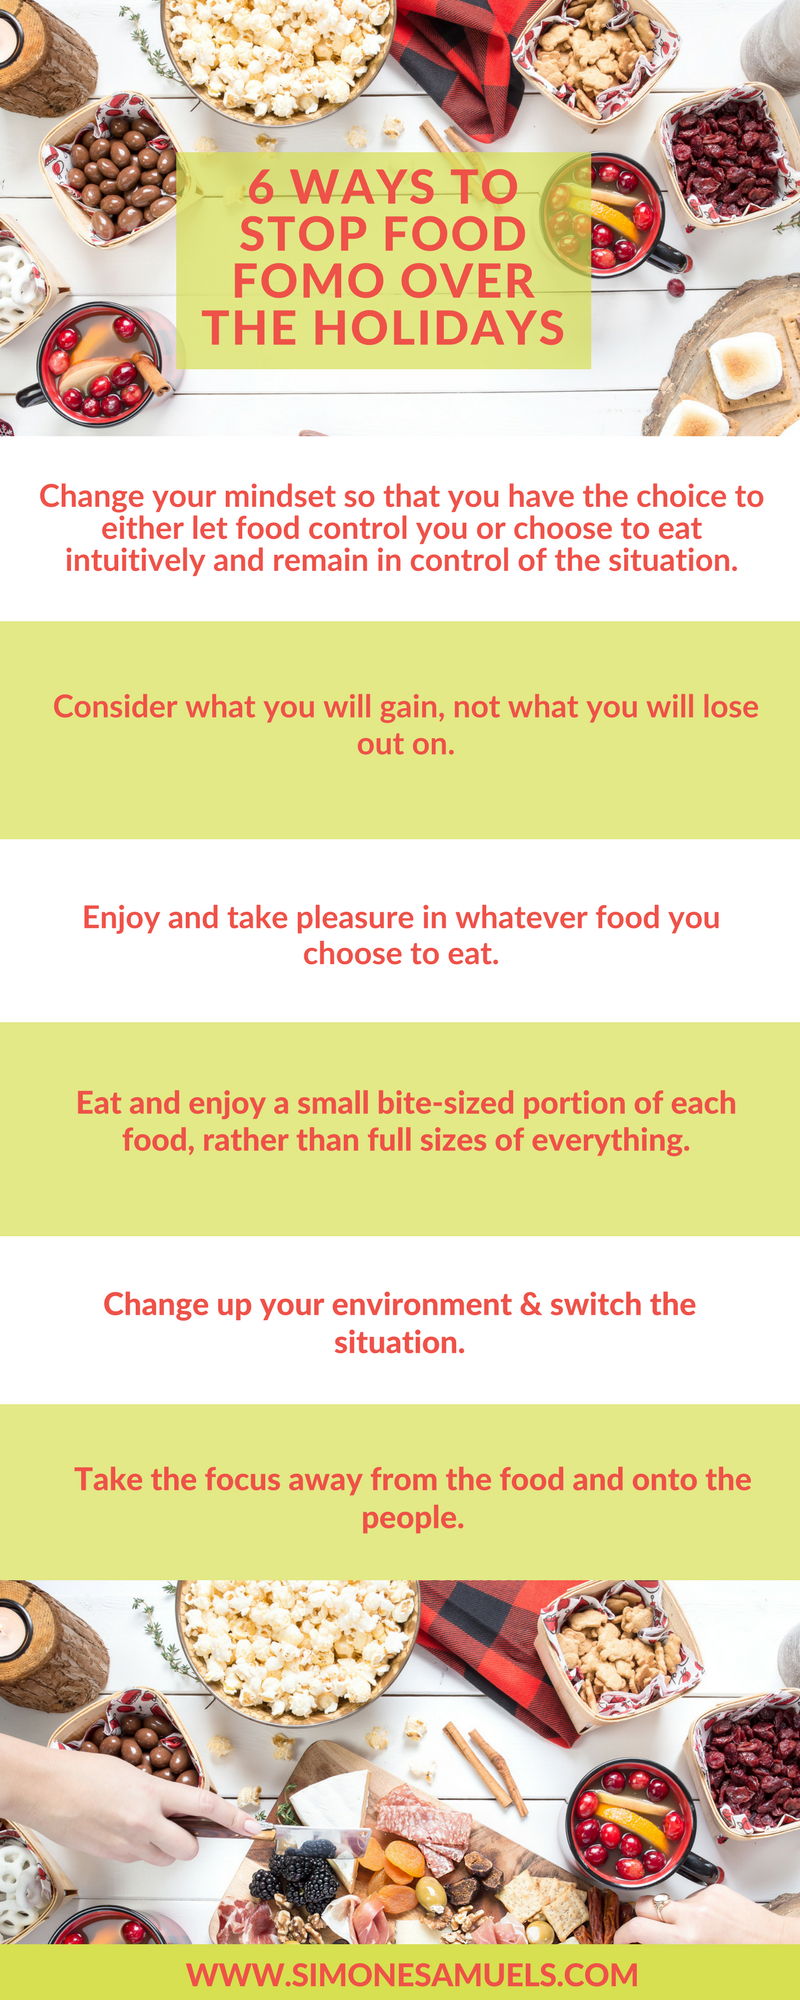 6 Ways to Stop Food FOMO over the Holidays Infographic